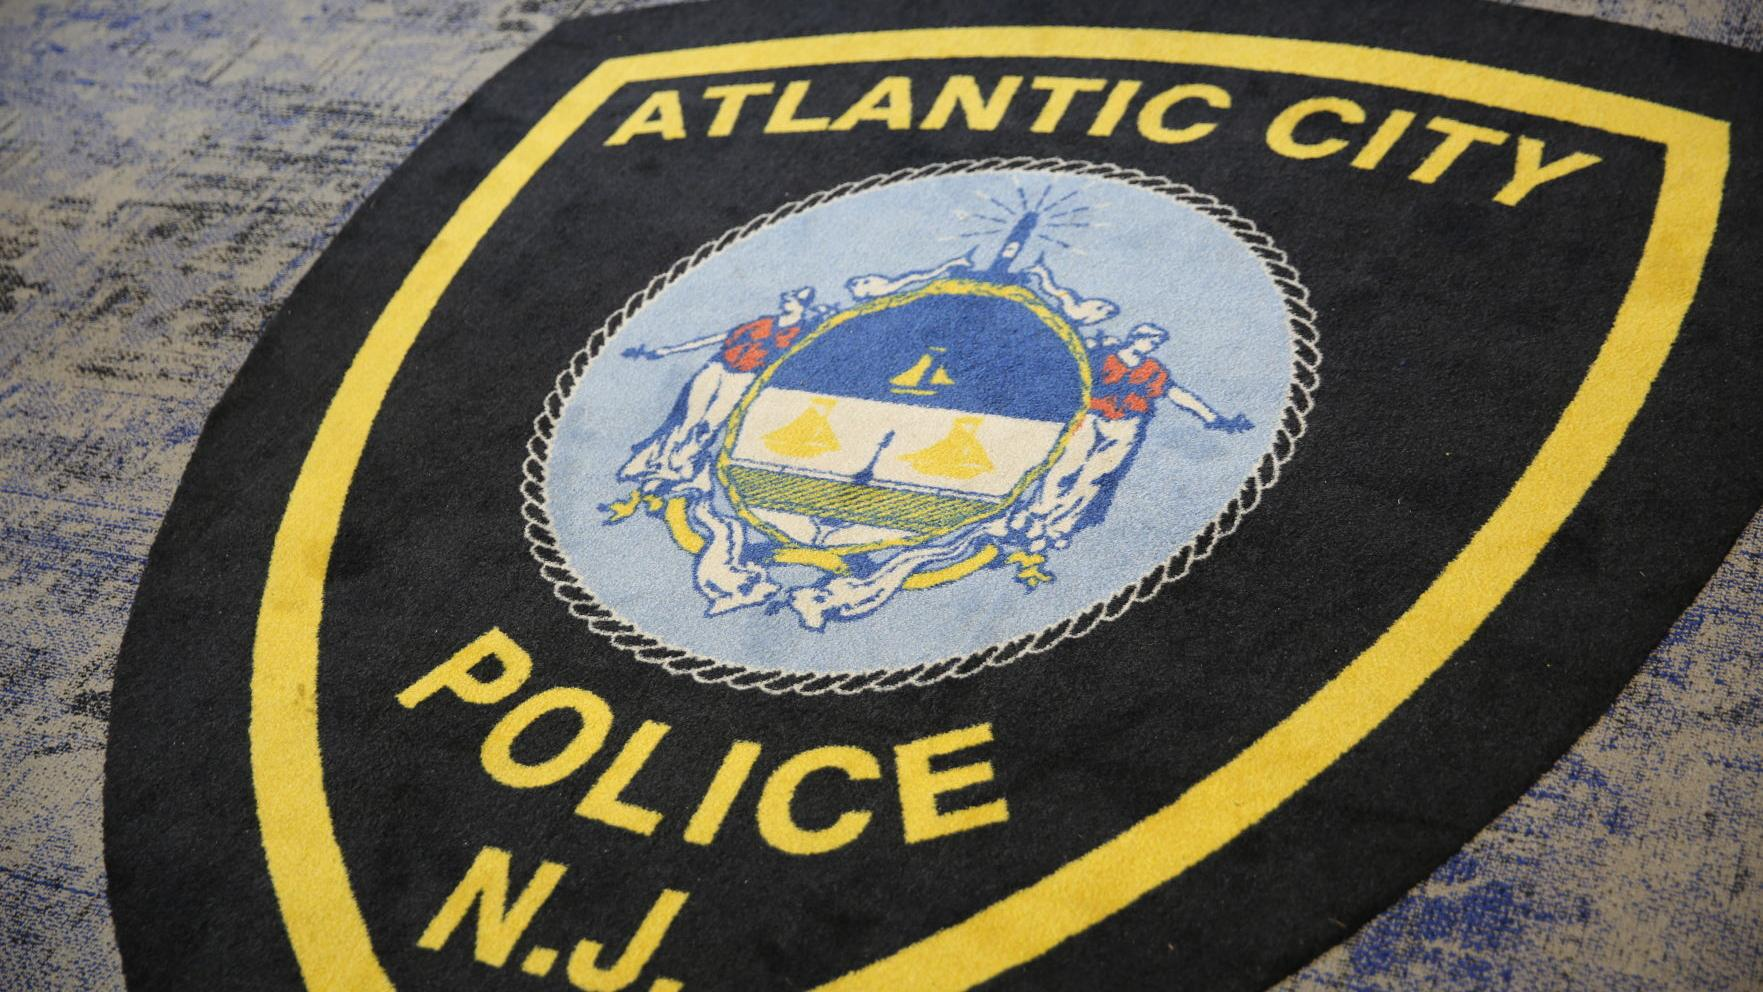 California man sentenced for shipping 30 pounds of meth to Atlantic City